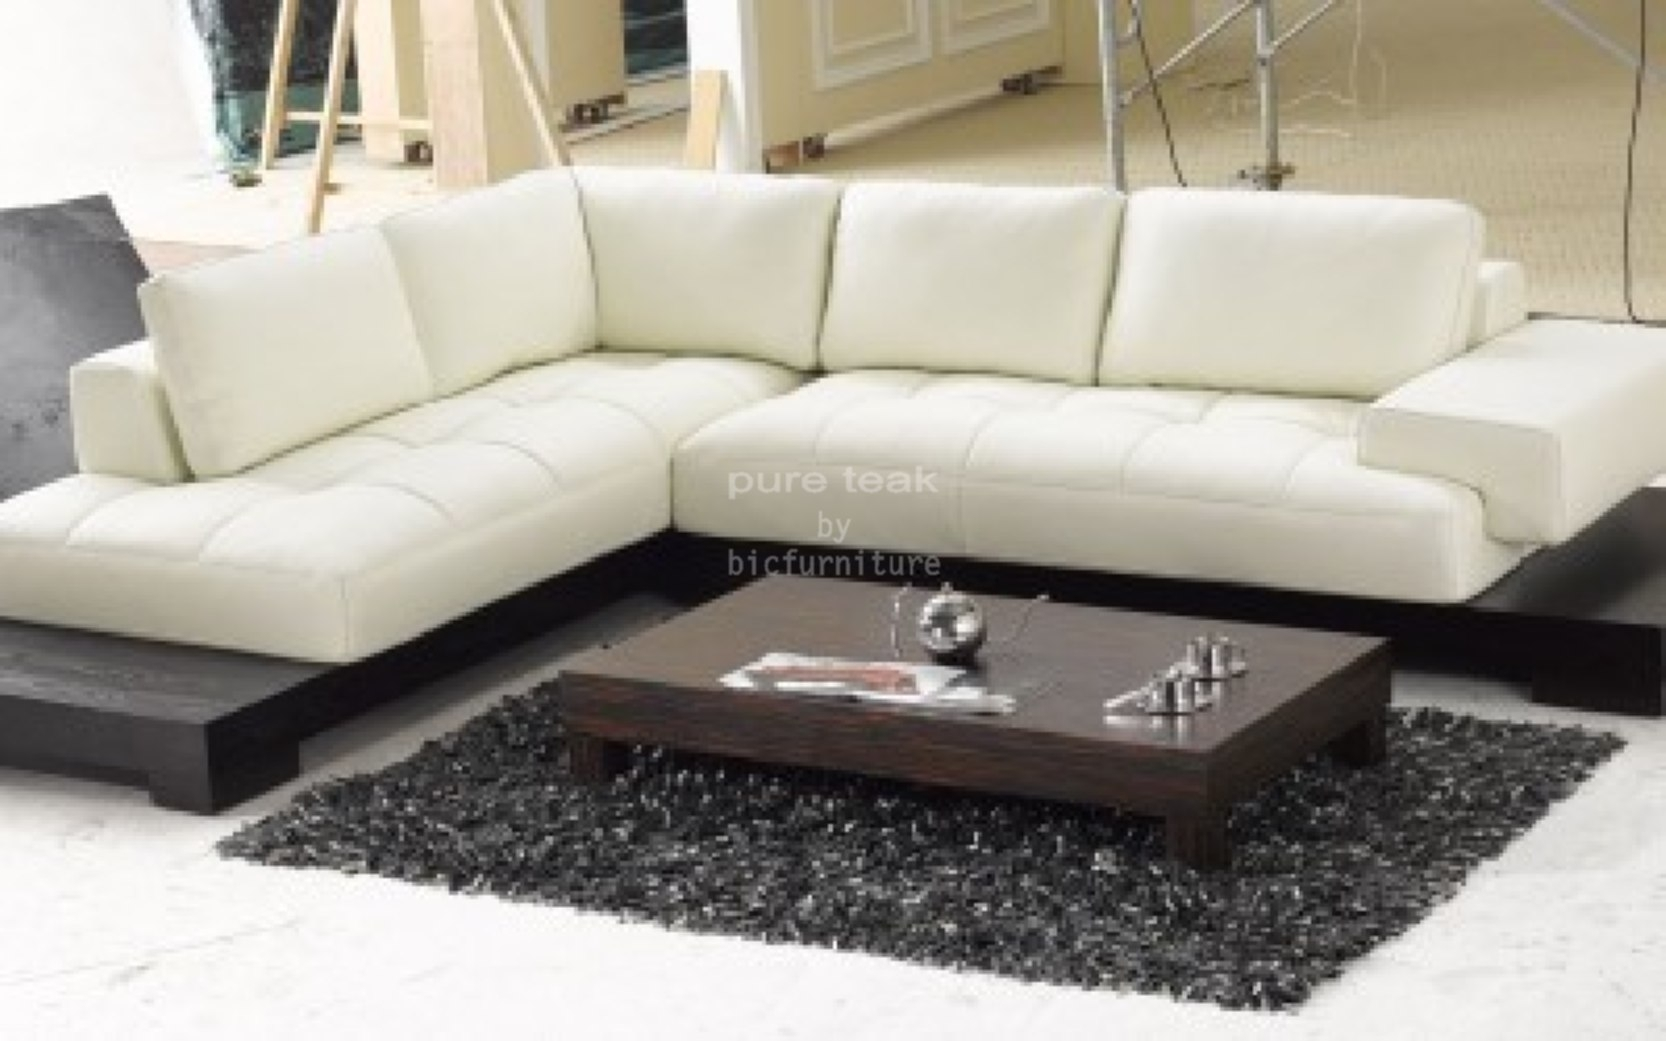 Low Teakwood Living Room Sofa Set (Ls 3) Details | Bic Furniture India Pertaining To L Shaped Sofas (View 2 of 10)